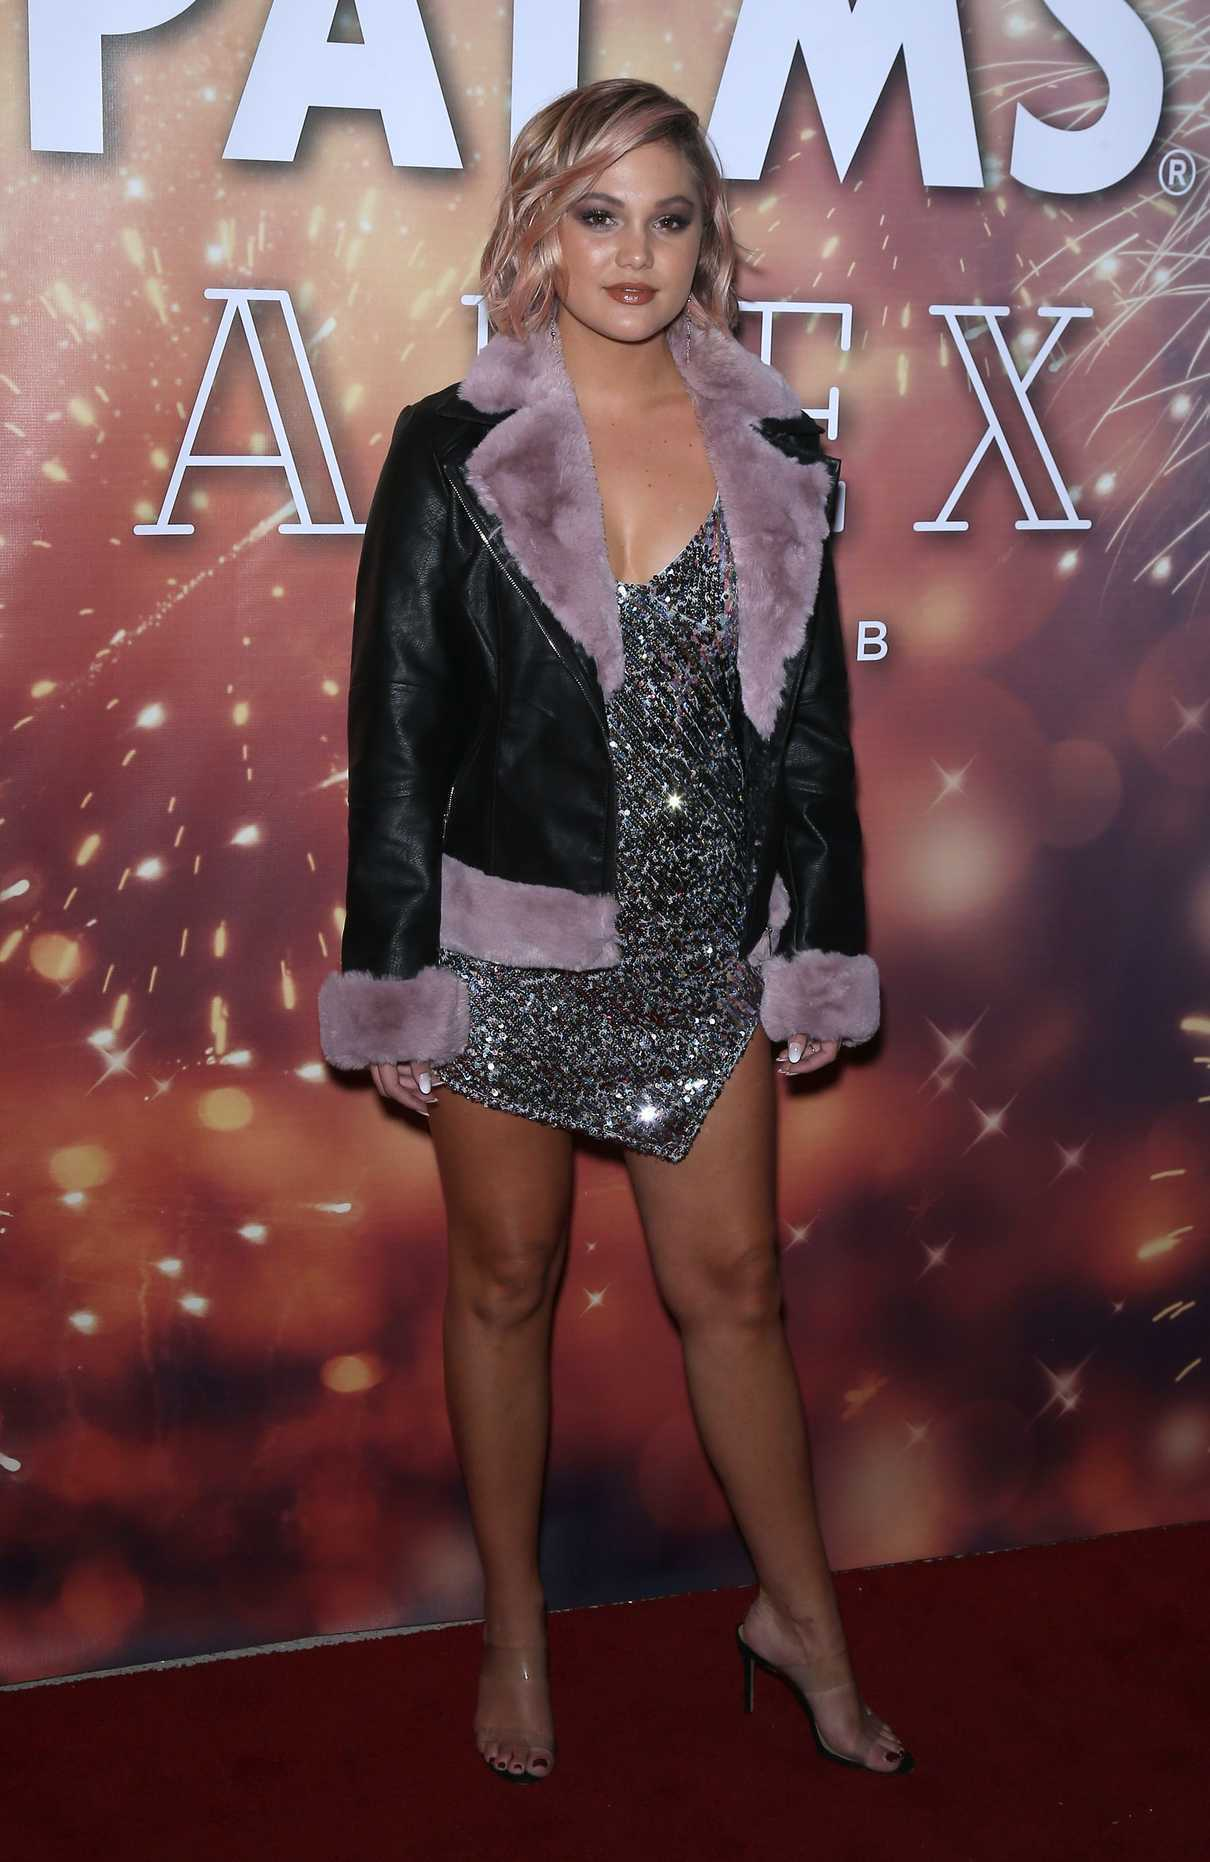 OLIVIA HOLT at New Years Eve at Apex Social Club in Las